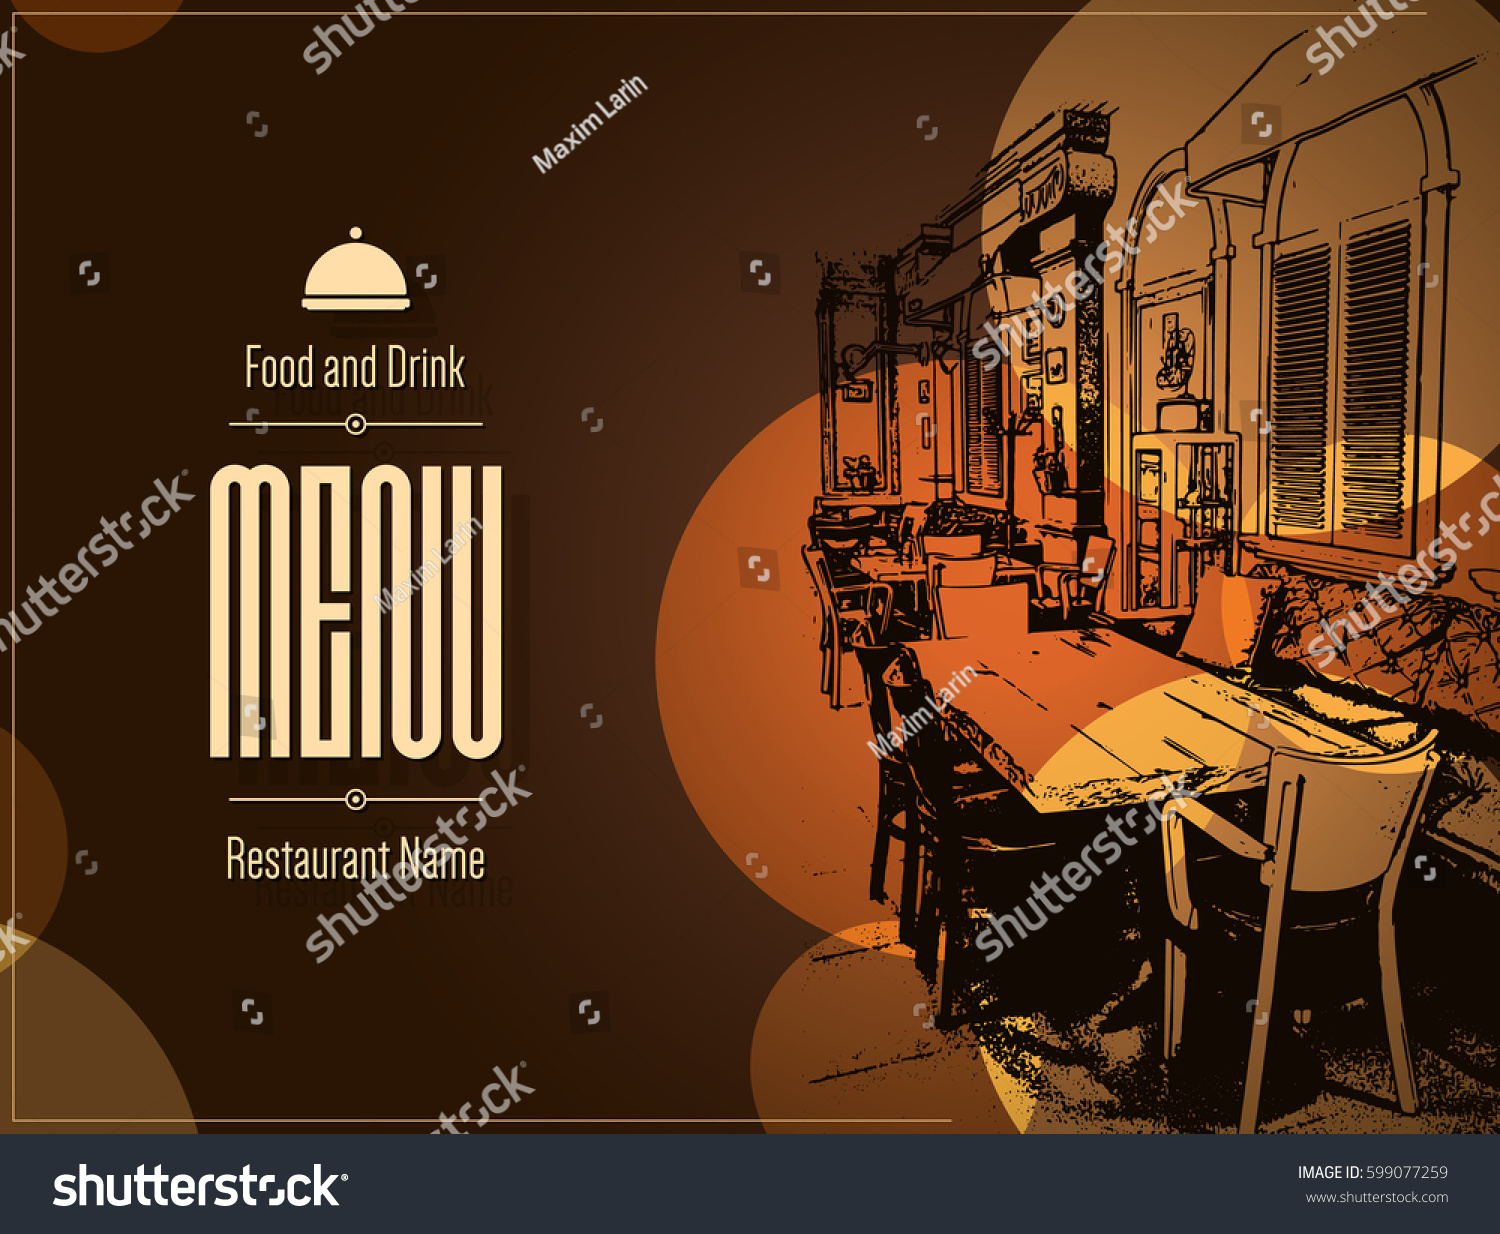 Restaurant menu design vector brochure stock